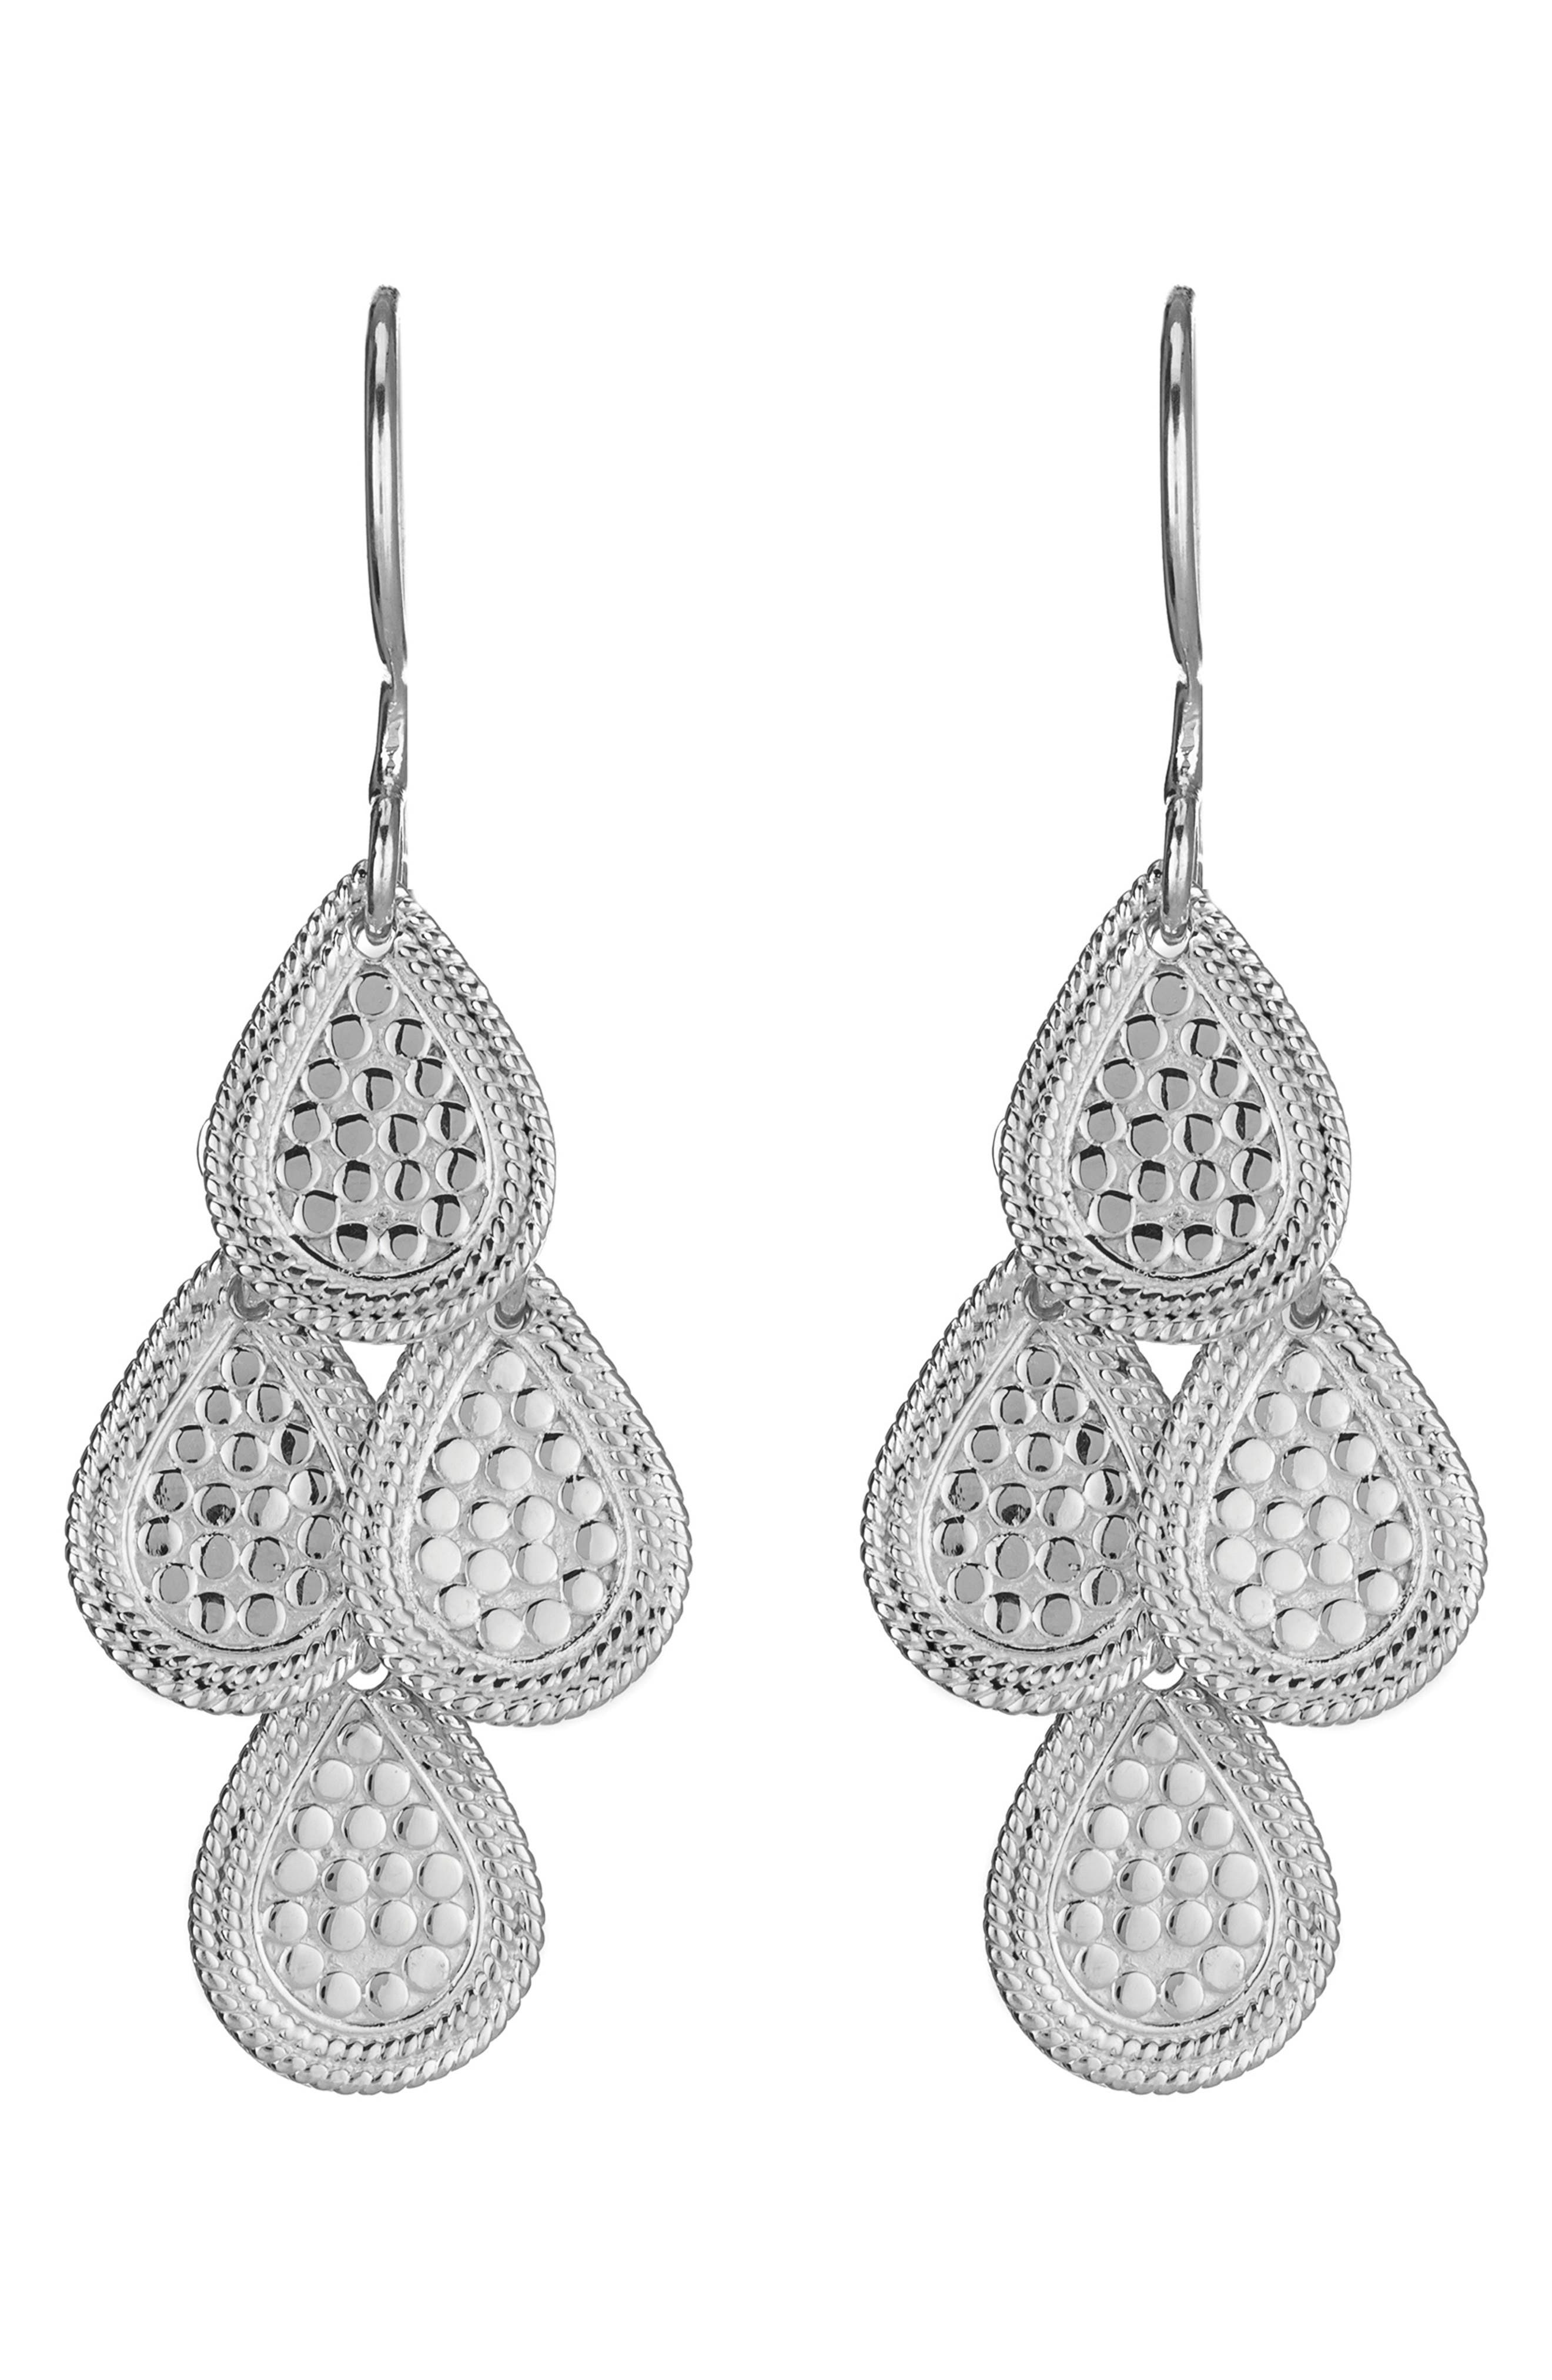 'Gili' Chandelier Earrings,                             Main thumbnail 1, color,                             STERLING SILVER